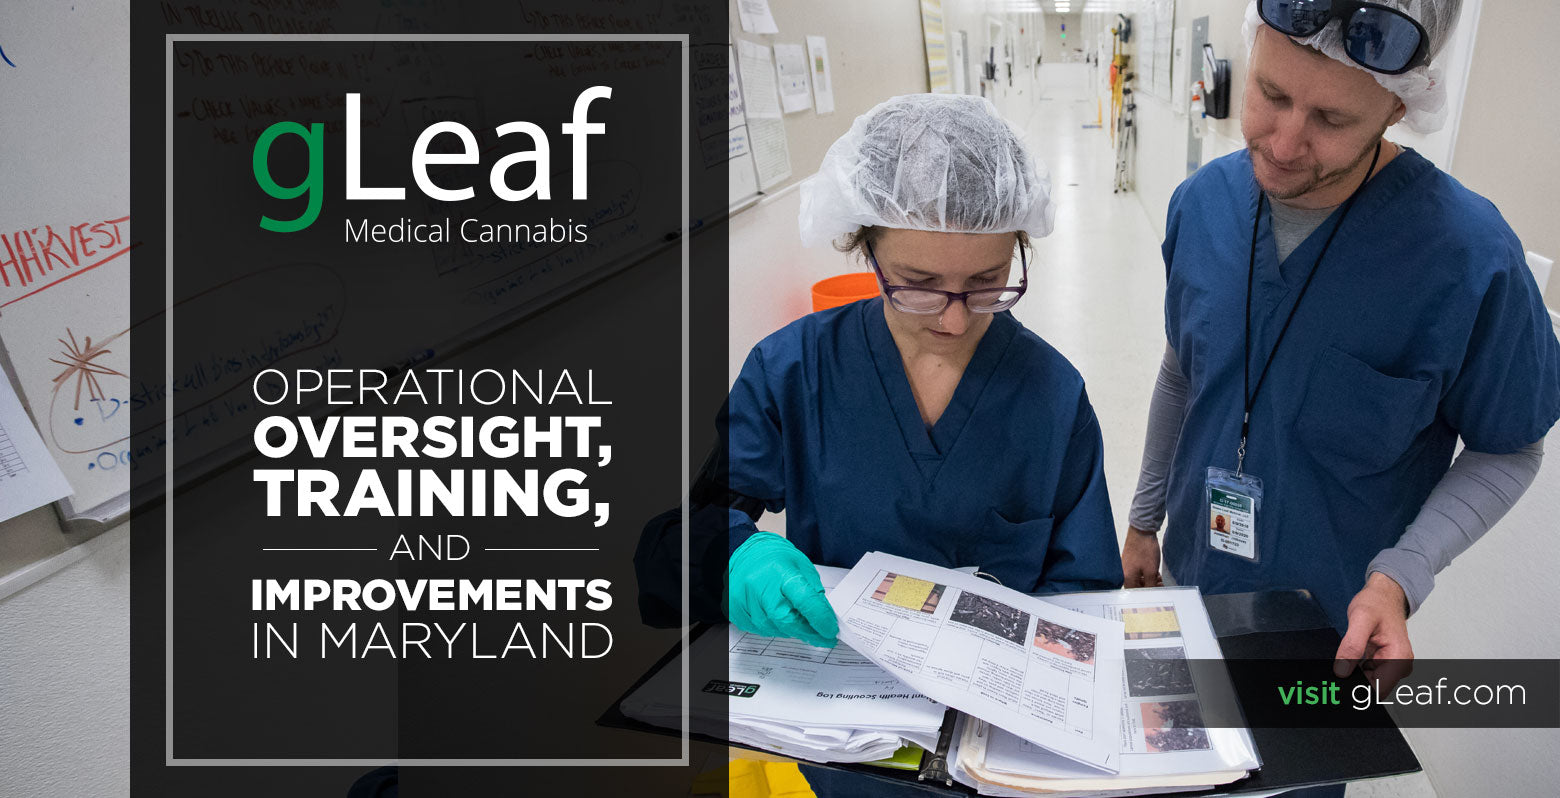 gleaf Medical Cannabis Operational Oversight Training and Improvements in Maryland